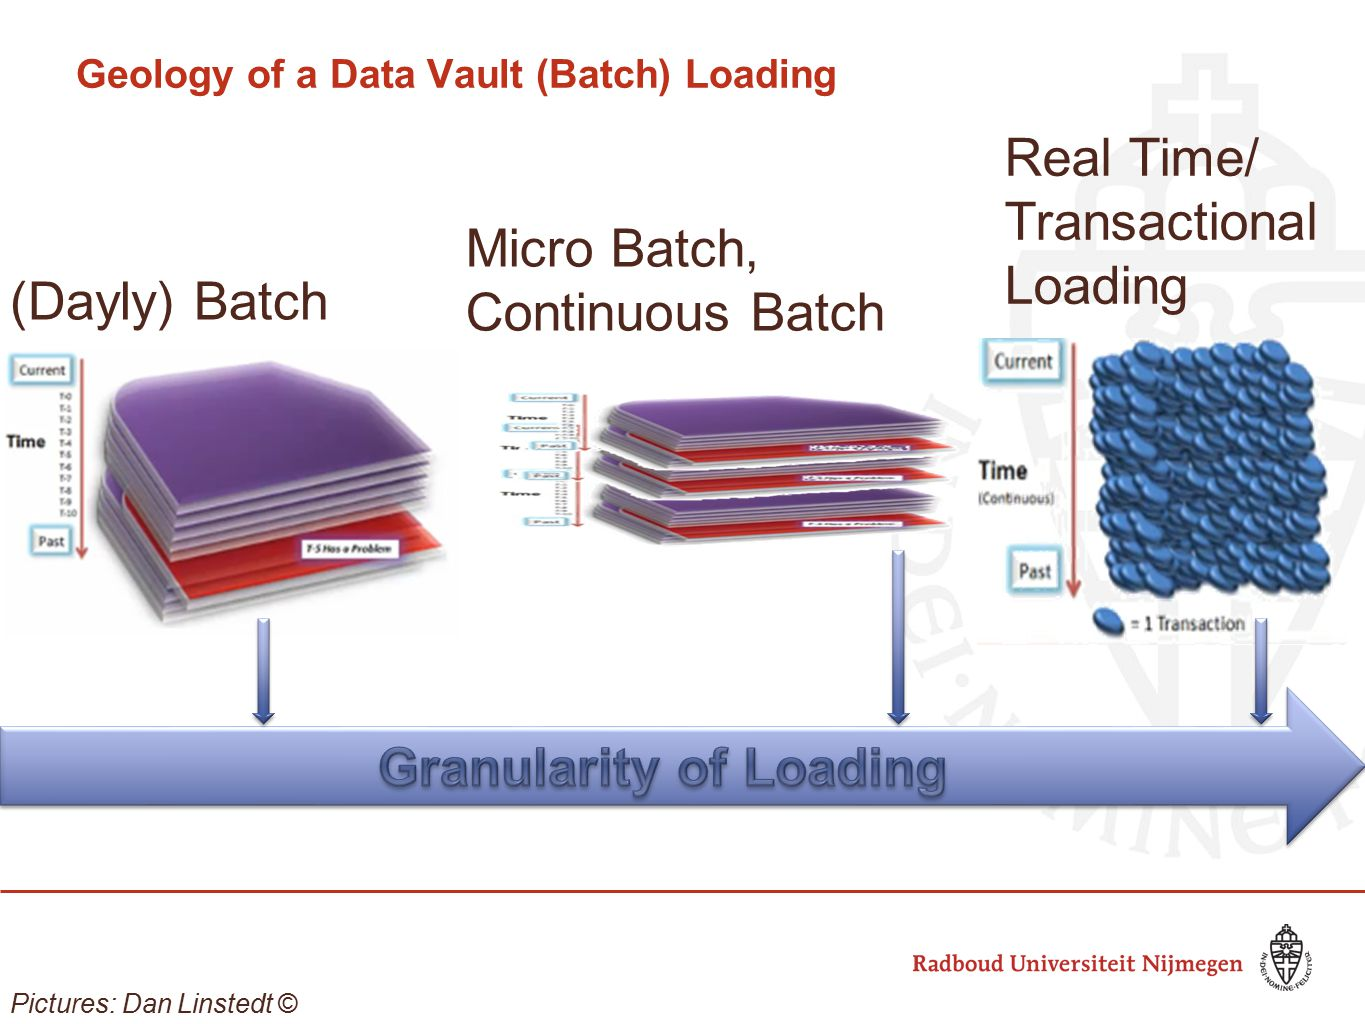 Geology of a Data Vault (Batch) Loading